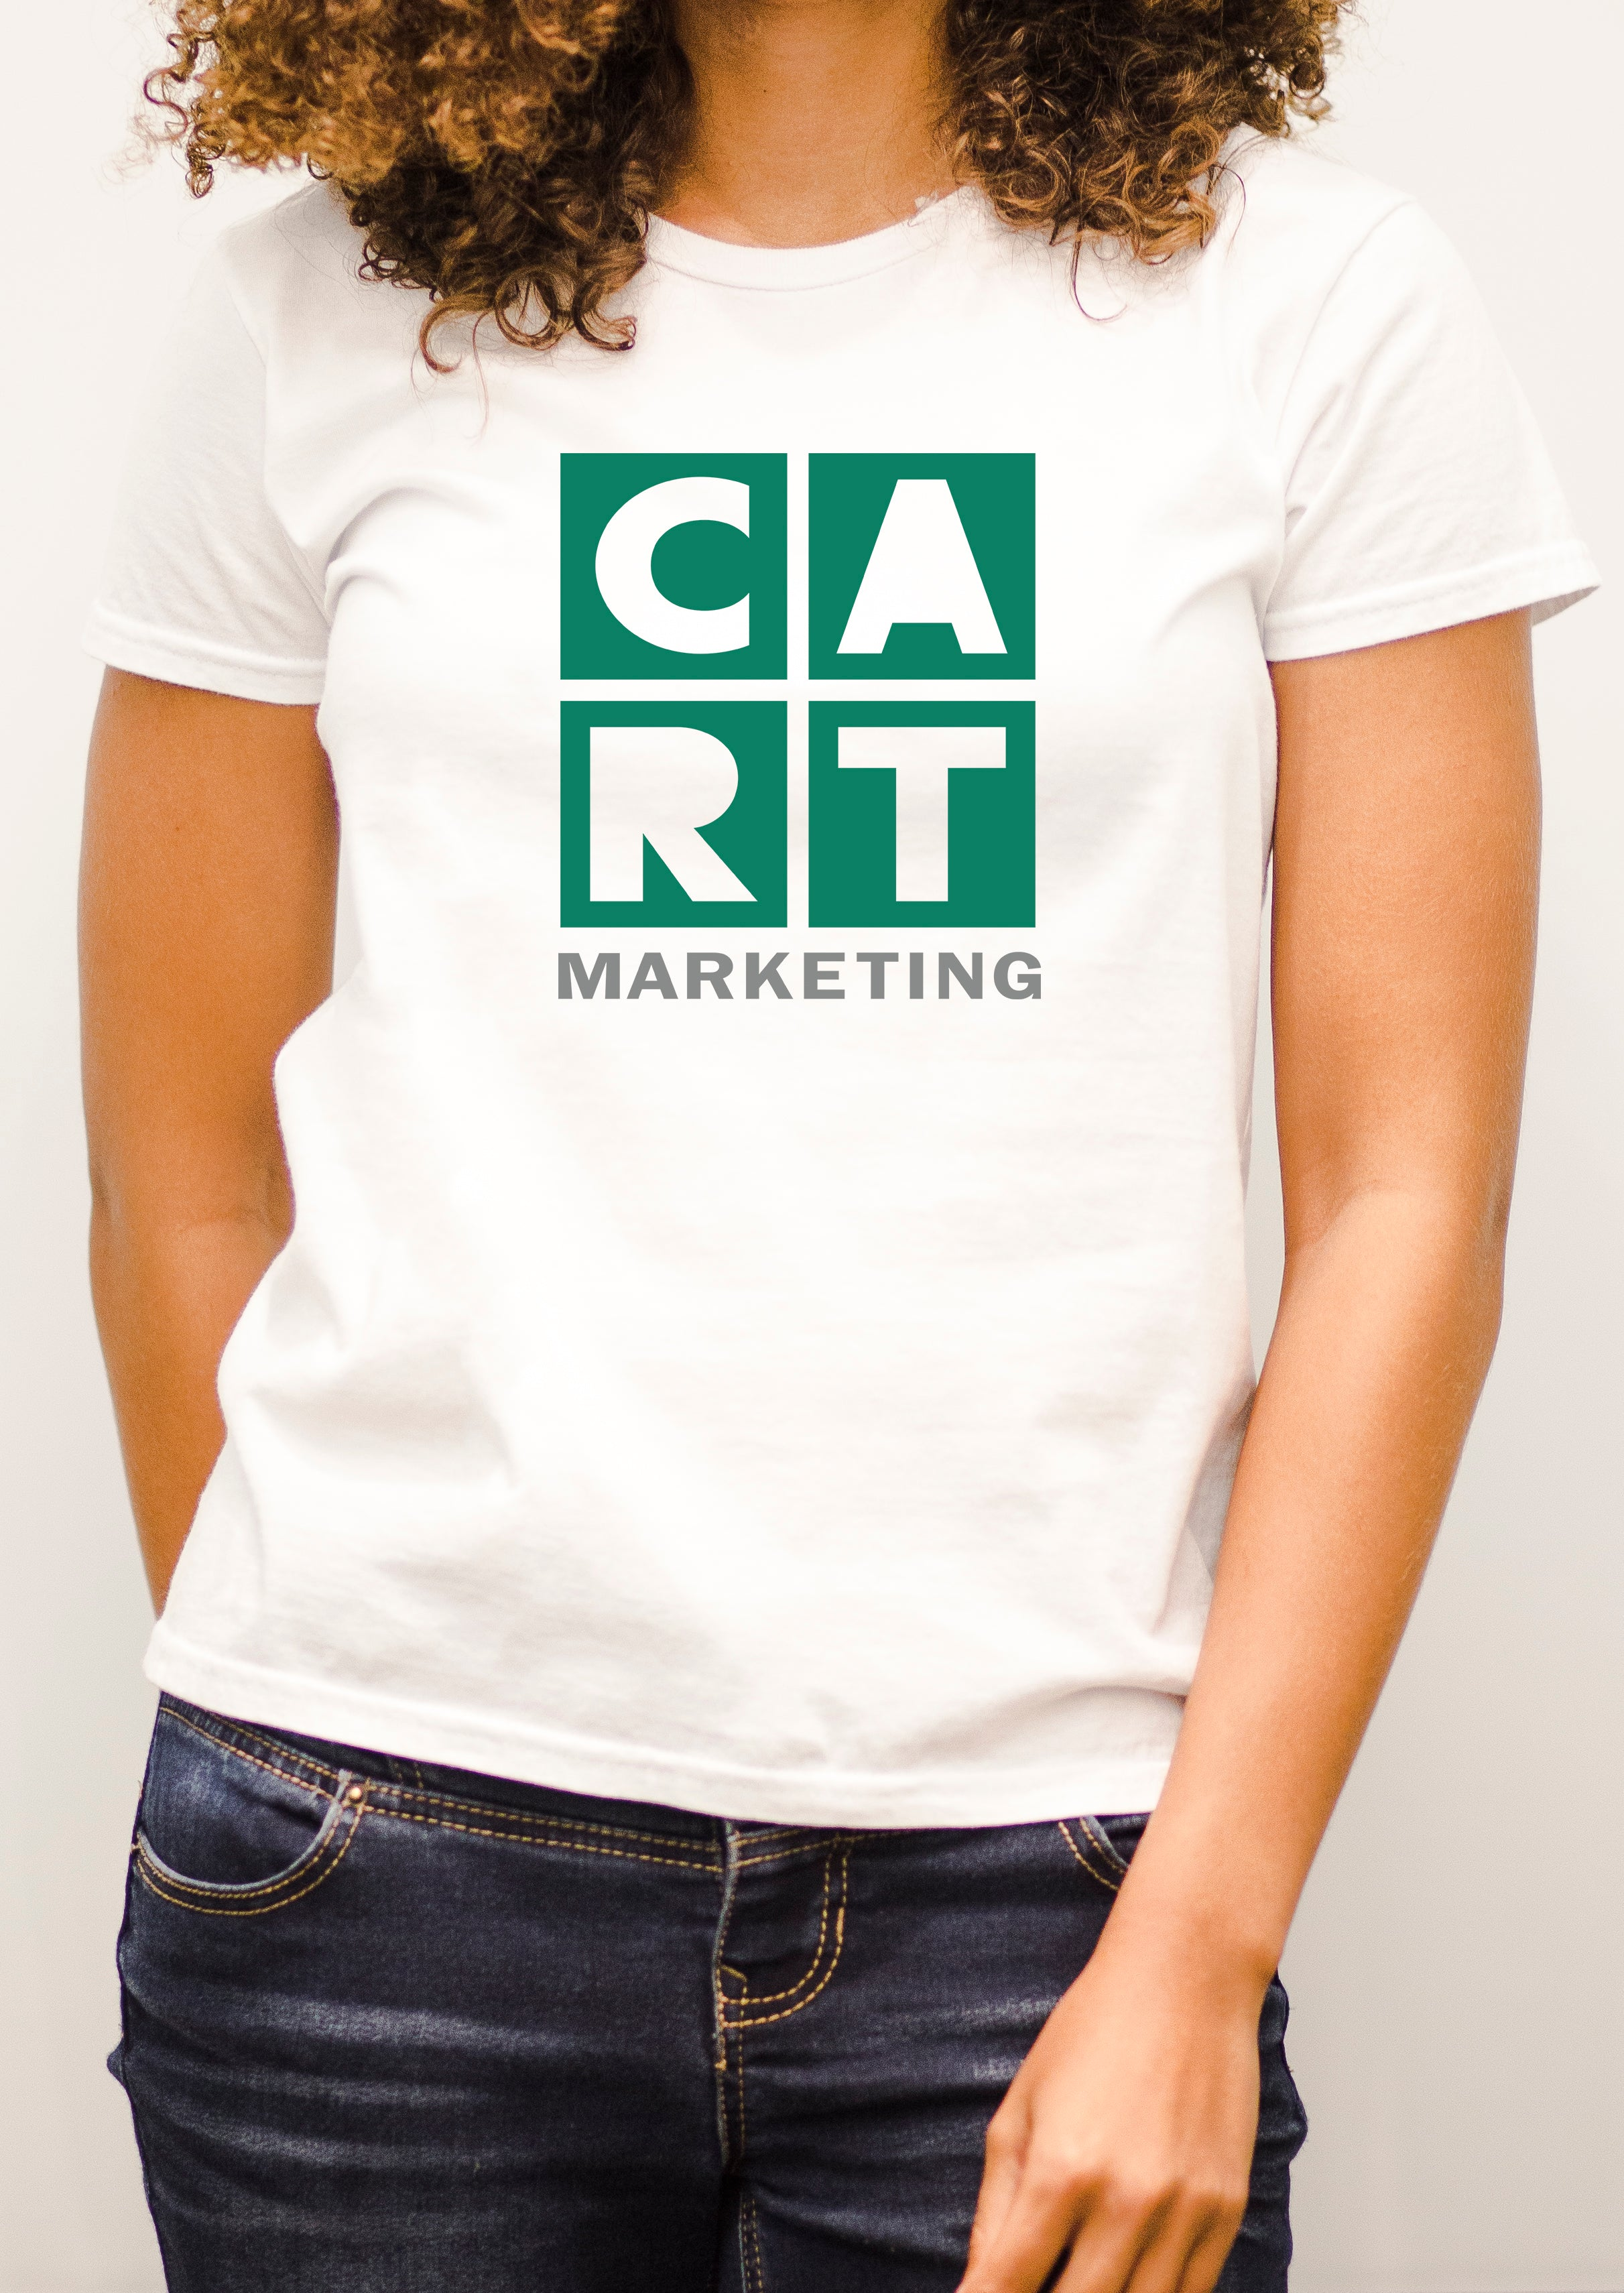 Women's short sleeve t-shirt - marketing grey/green